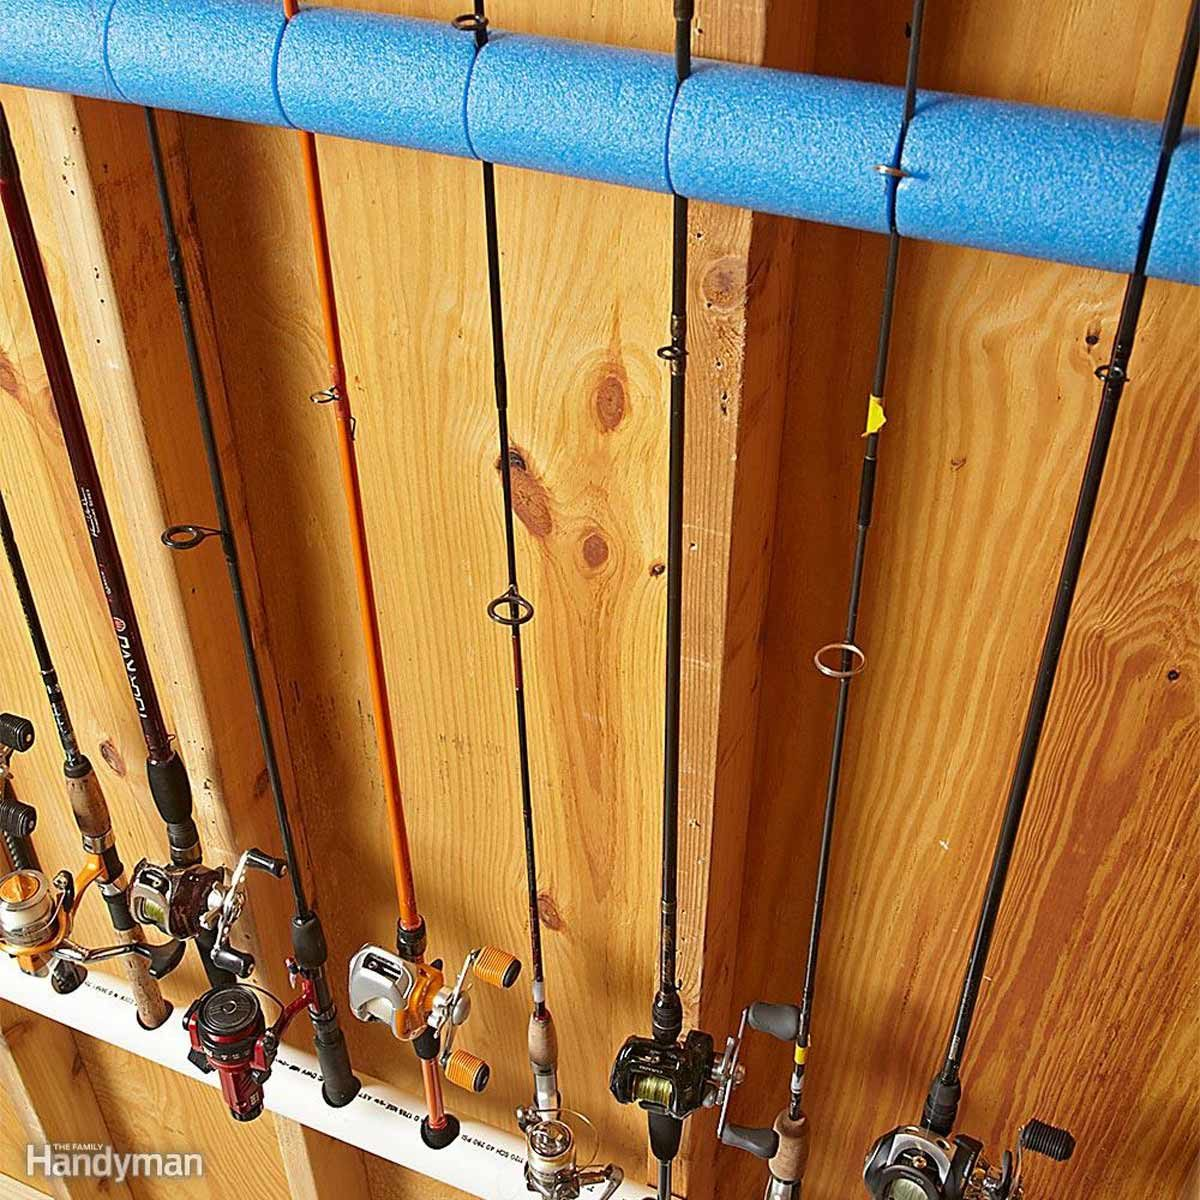 Fishing Rod Organizer